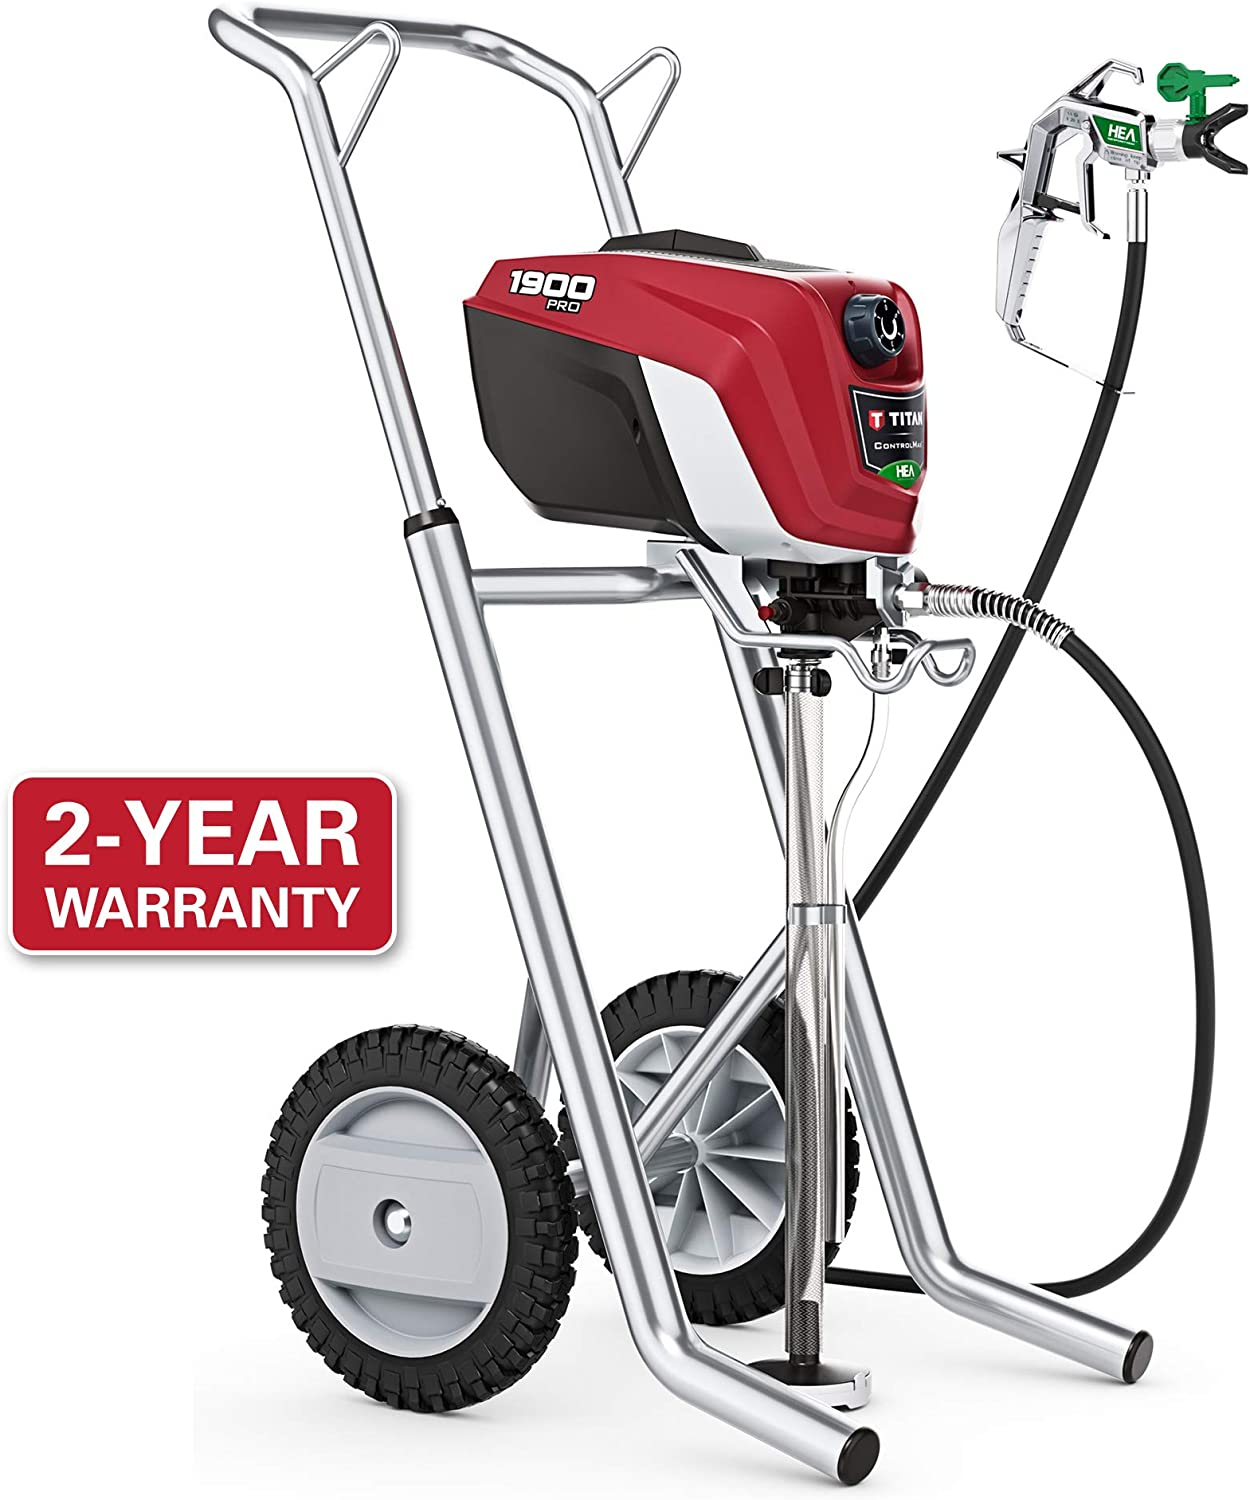 Titan ControlMax 1900 PRO Commercial Airless Paint Sprayer